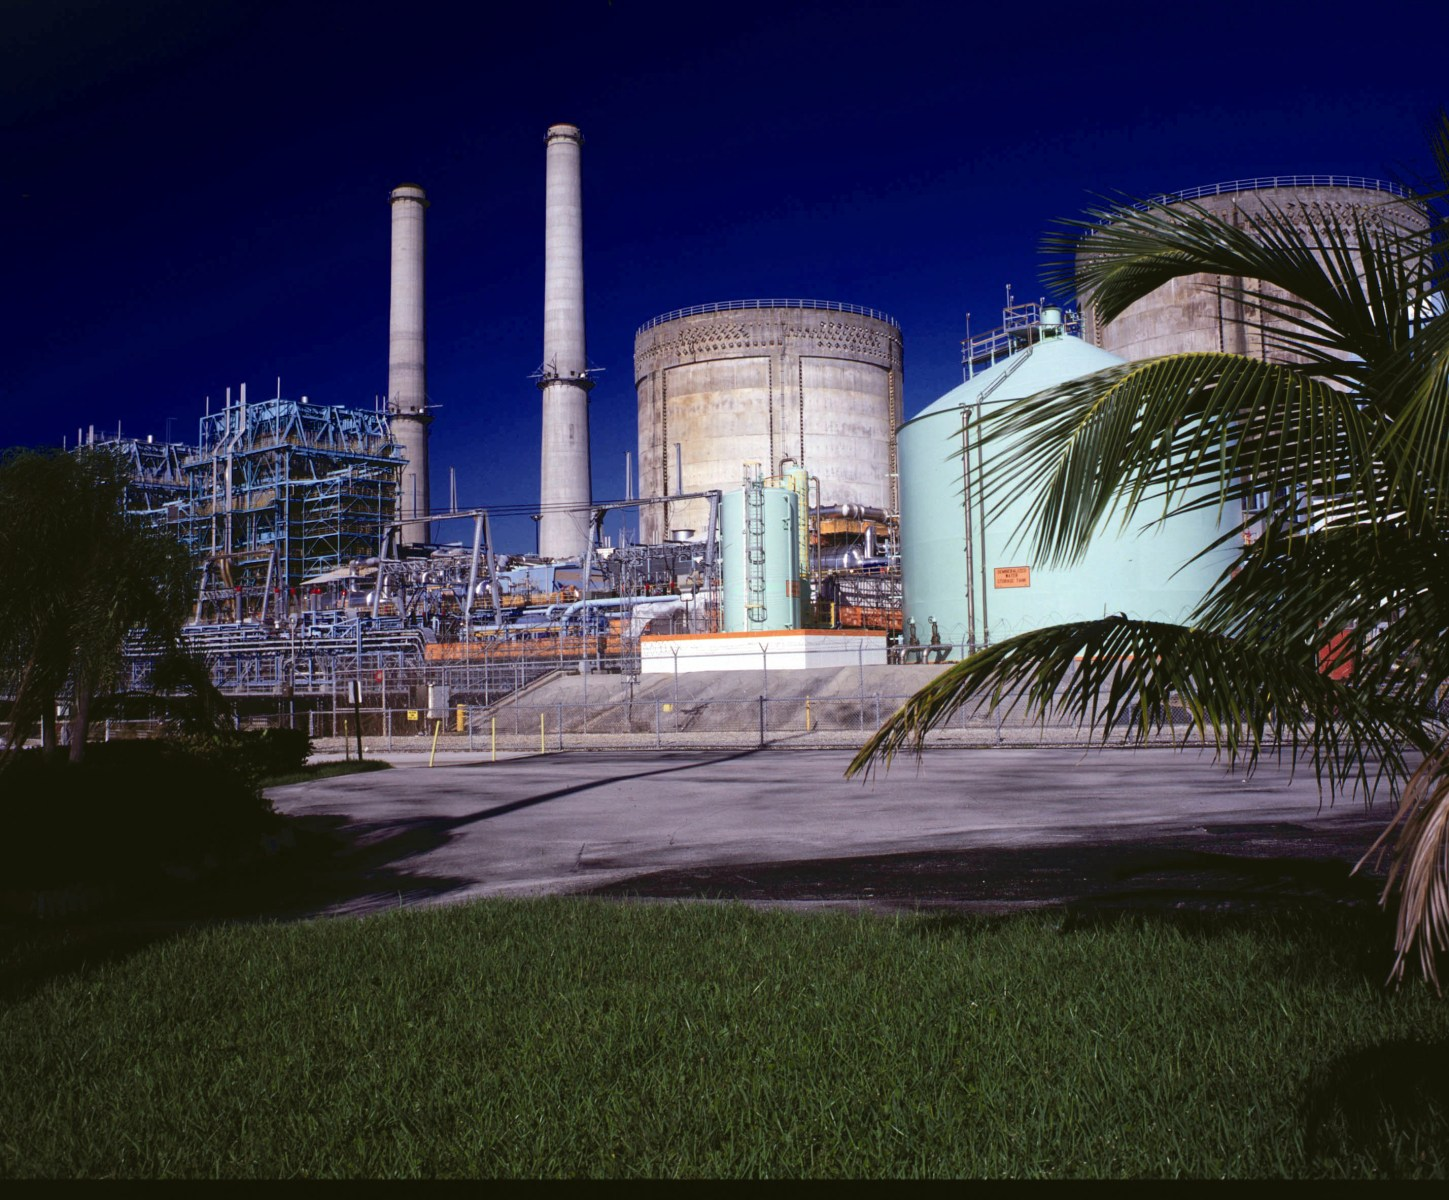 Turkey Point Nuclear Generating, Units 3 and 4. Photo courtesy NRC, https://flic.kr/p/aVWrk6